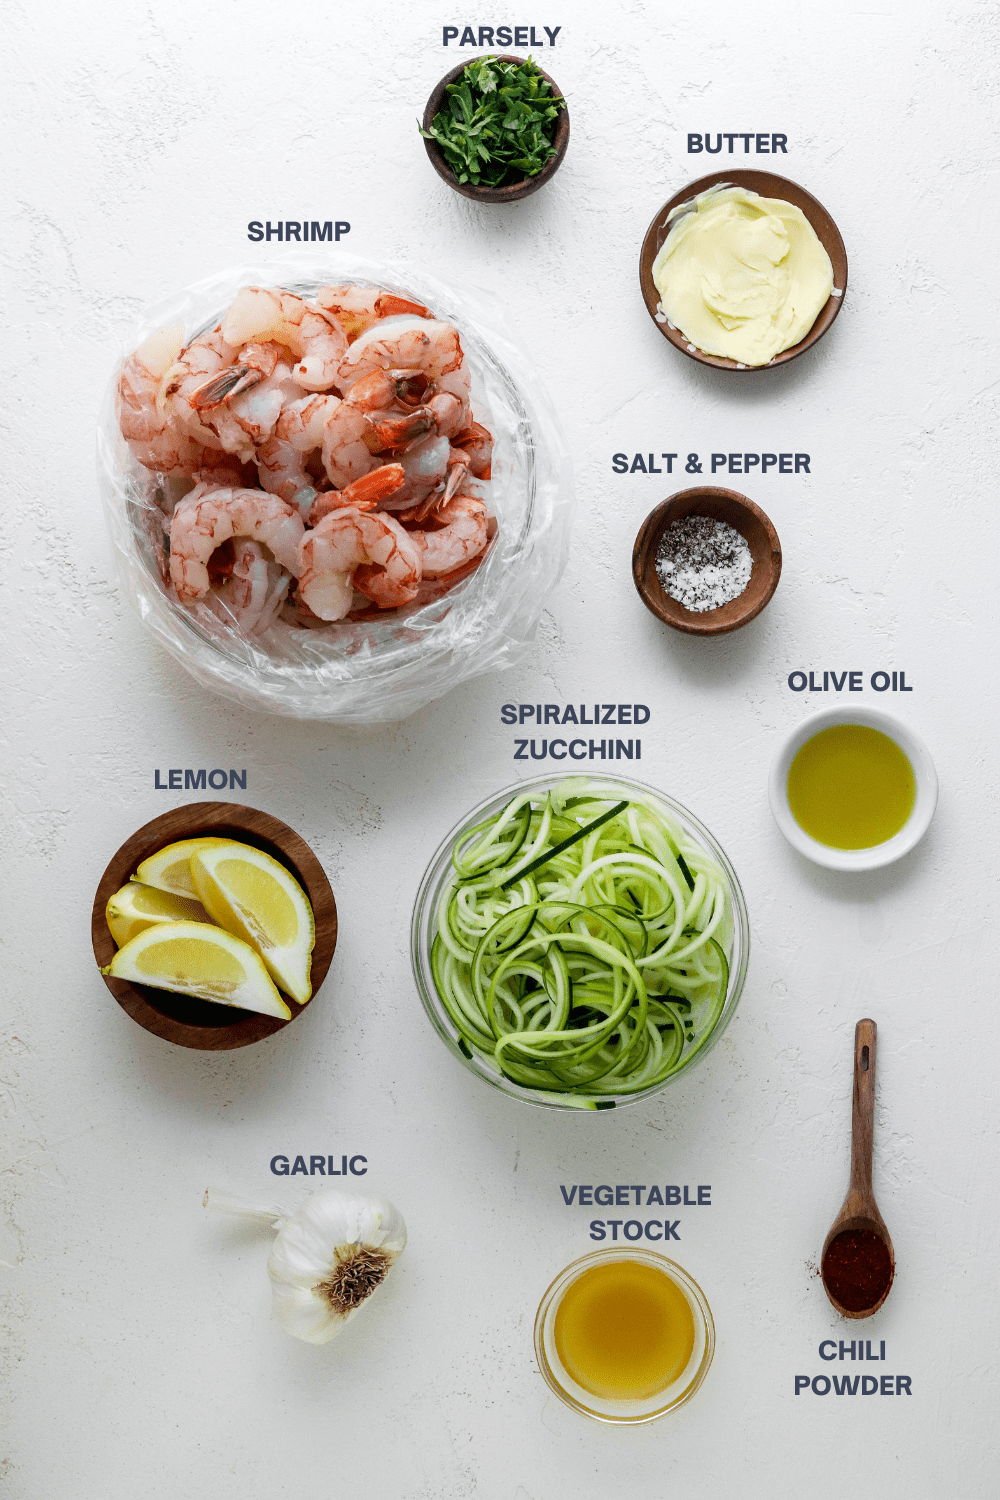 Bowl of shrimp with a wooden bowl of parsley, plate of butter, bowl of salt and pepper around it with a bowl of spiralled zucchini noodles, wooden bowl of lemon wedges, small shite bowl of olive oil and a wooden spoon with spices in front of it with labels on  top of each item.